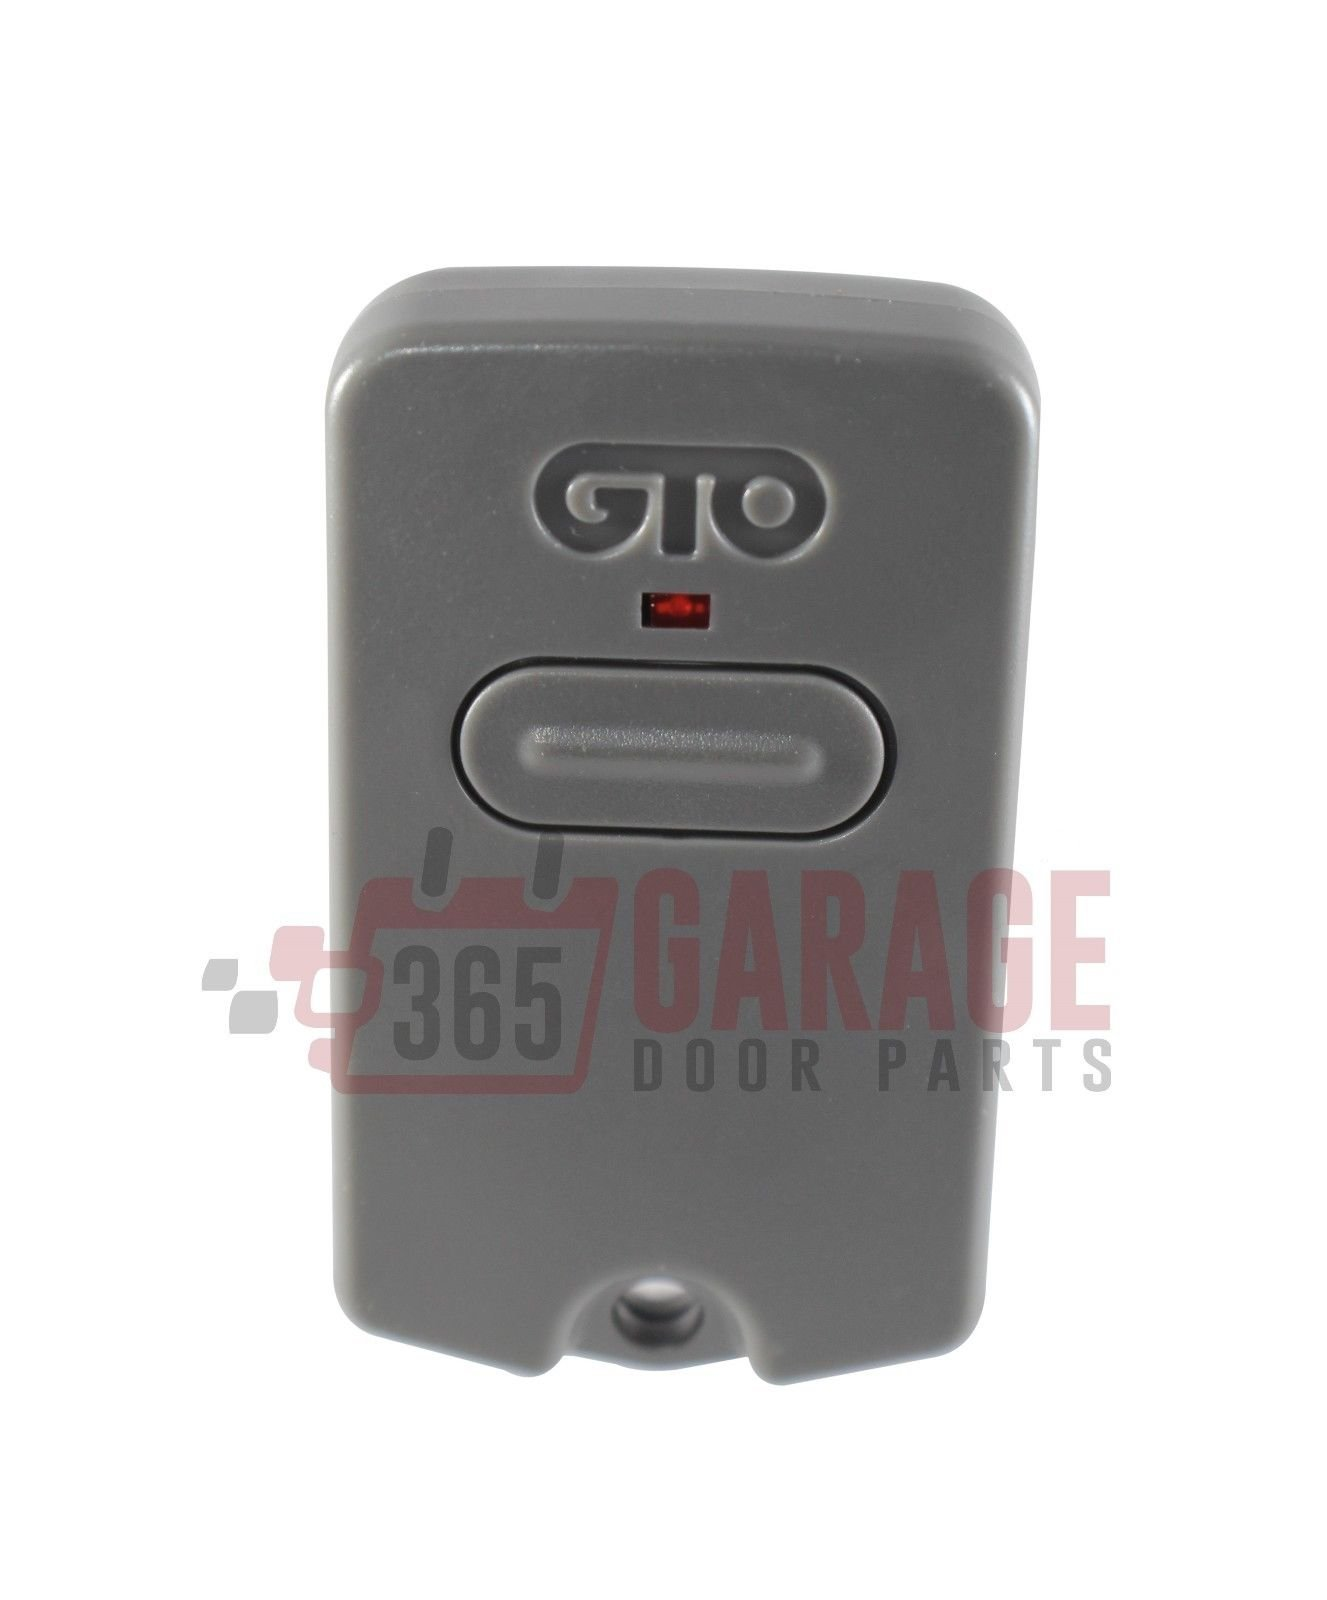 GTO Mighty Mule RB741 Gate Opener Remote Transmitter (Default)